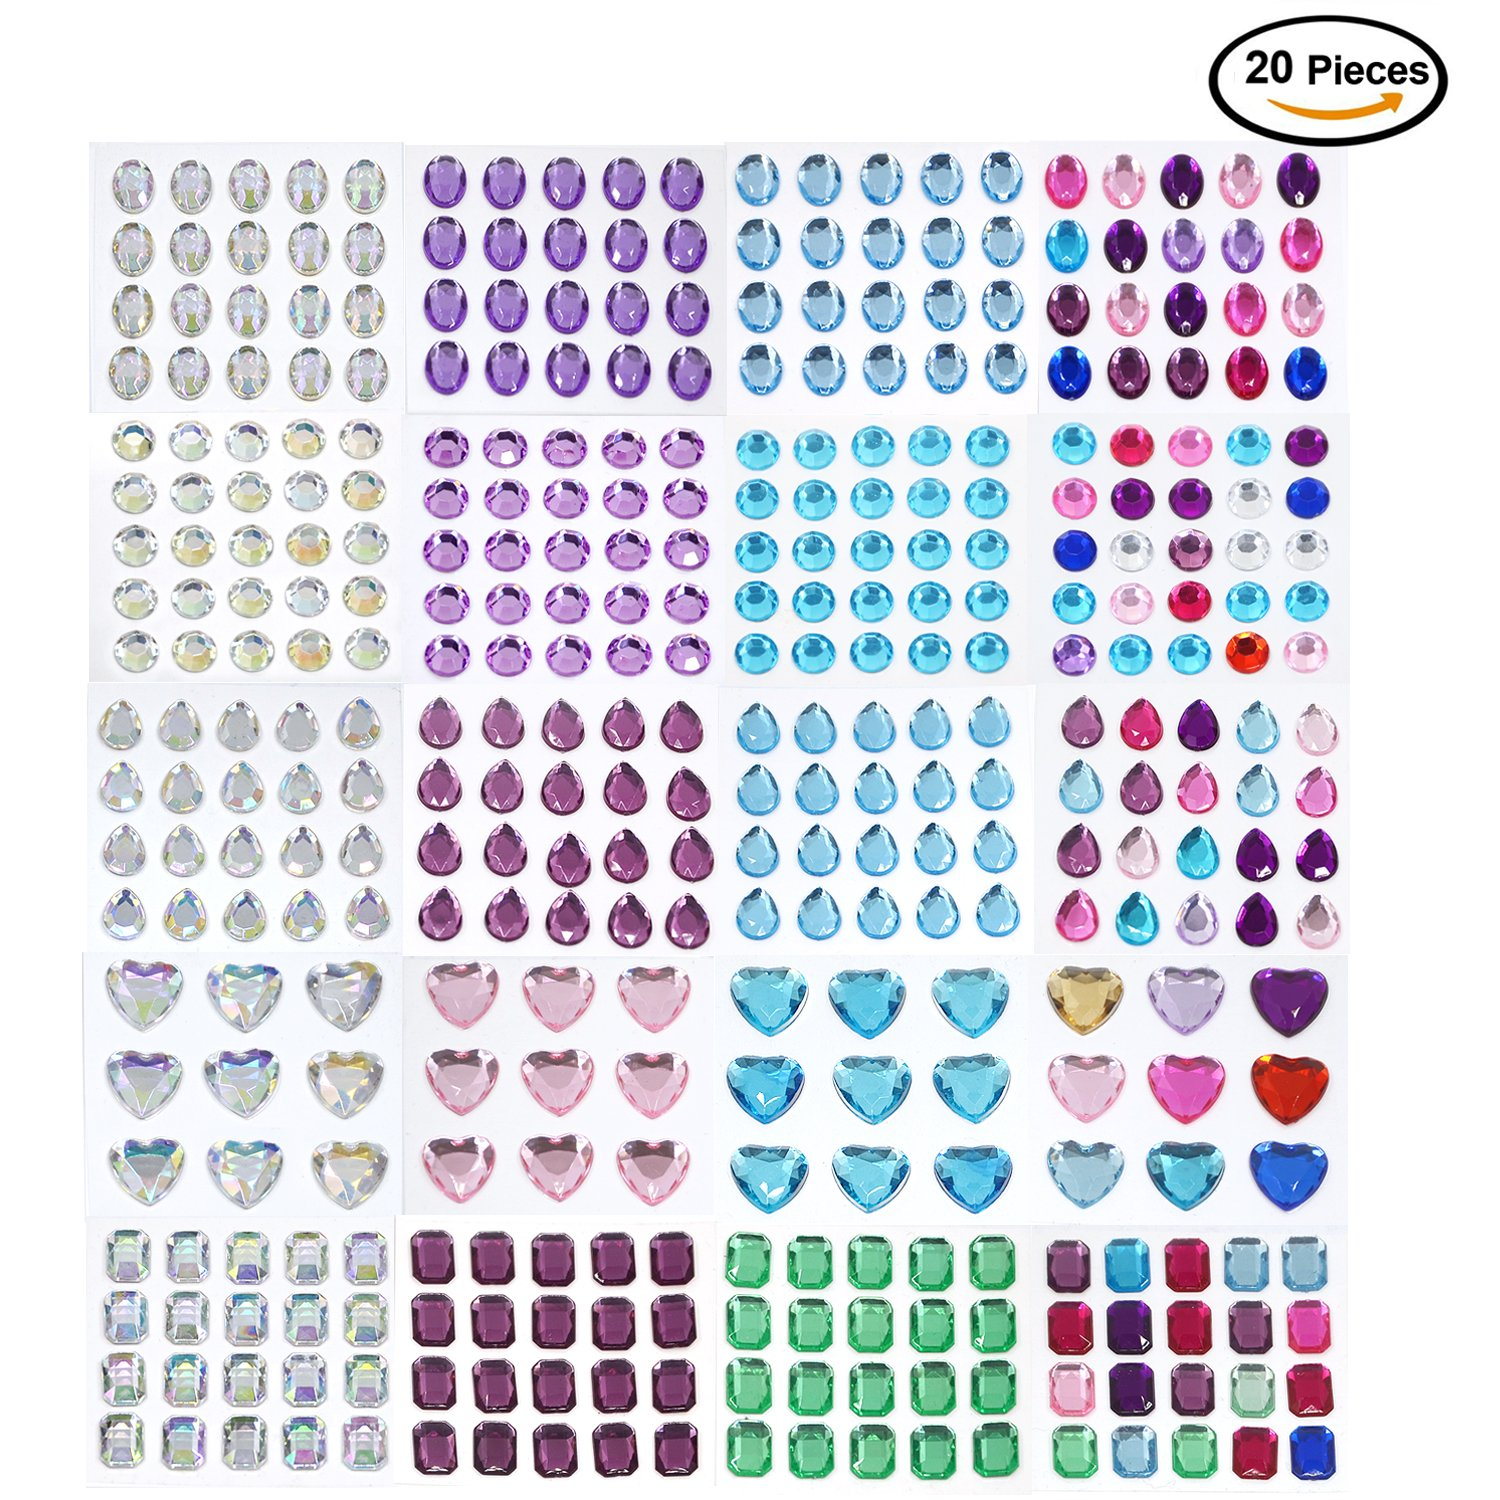 Lanpu Self-adhesive Rhinestone Sticker Bling Craft Jewels Crystal Gem Stickers, Multi-color & Shape, Assorted Size, 15 Sheets